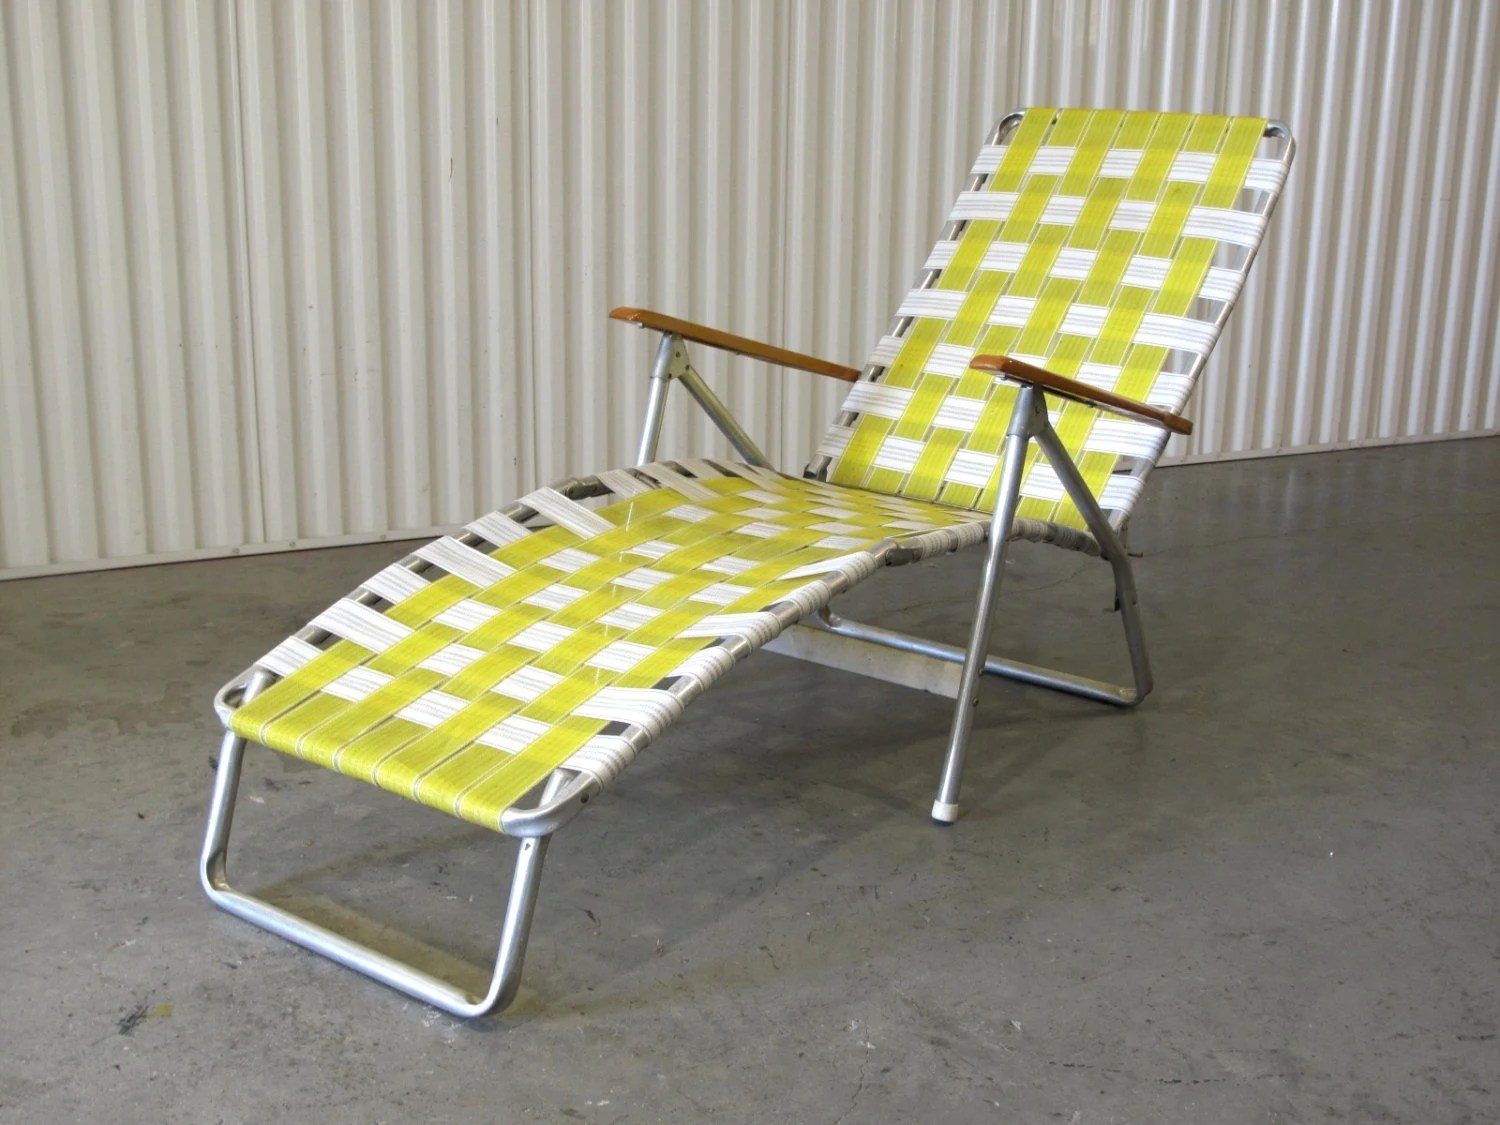 Aluminum Lawn Chairs 1960 39s Webbed Lawn Chair Folding Beach Chair Lounge